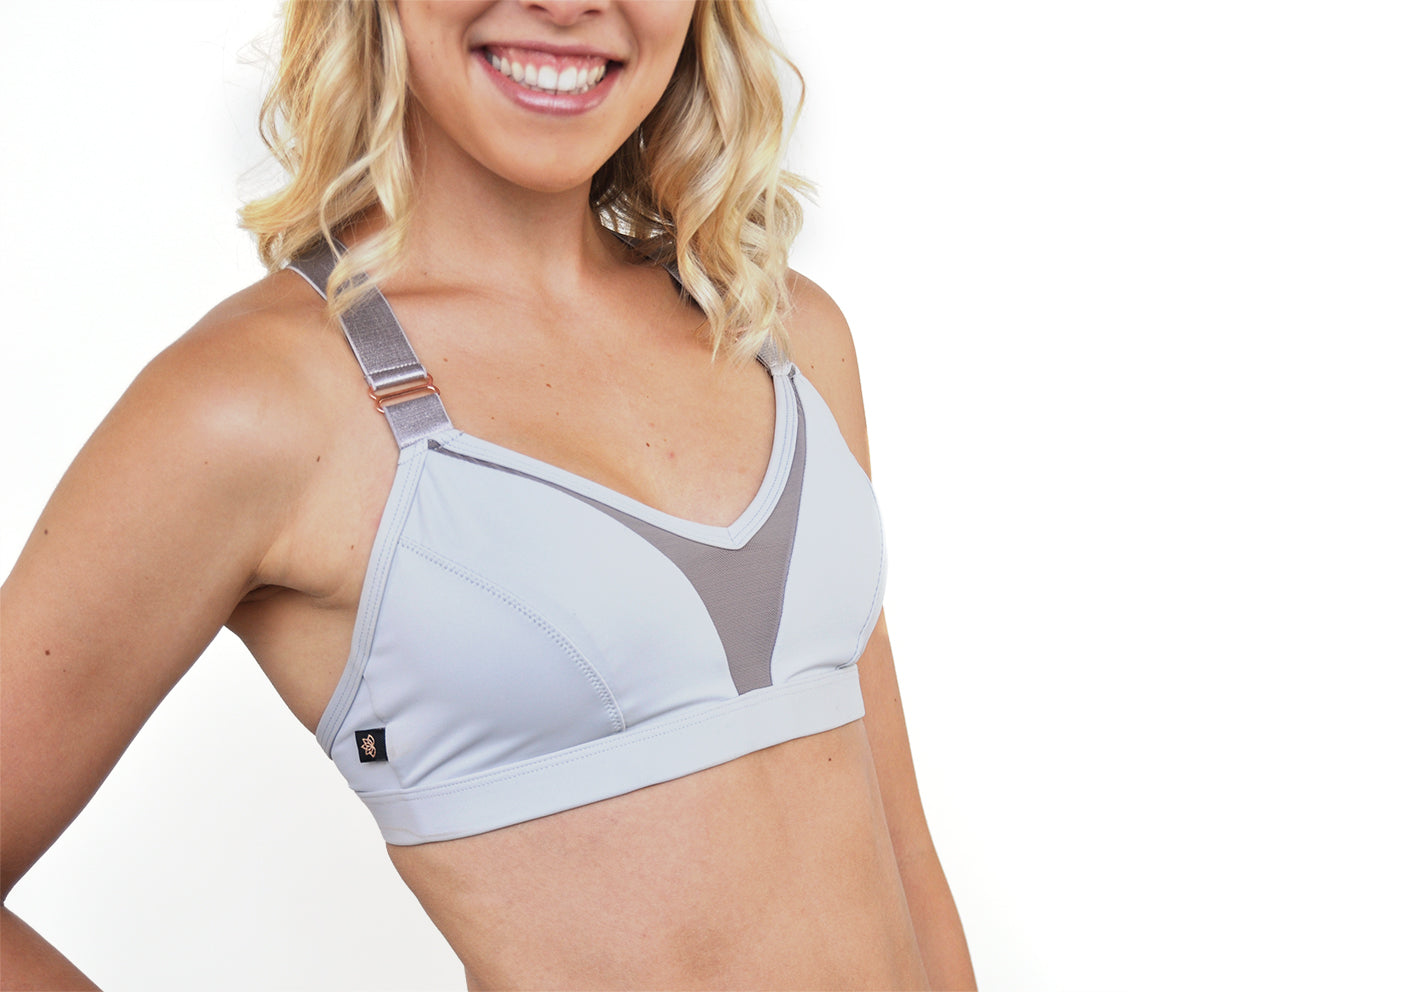 L'urv mesh front v-neck adjustable strap new beginnings bralette in grey with rose gold hardware. Unique Sports Bra Zoomed View